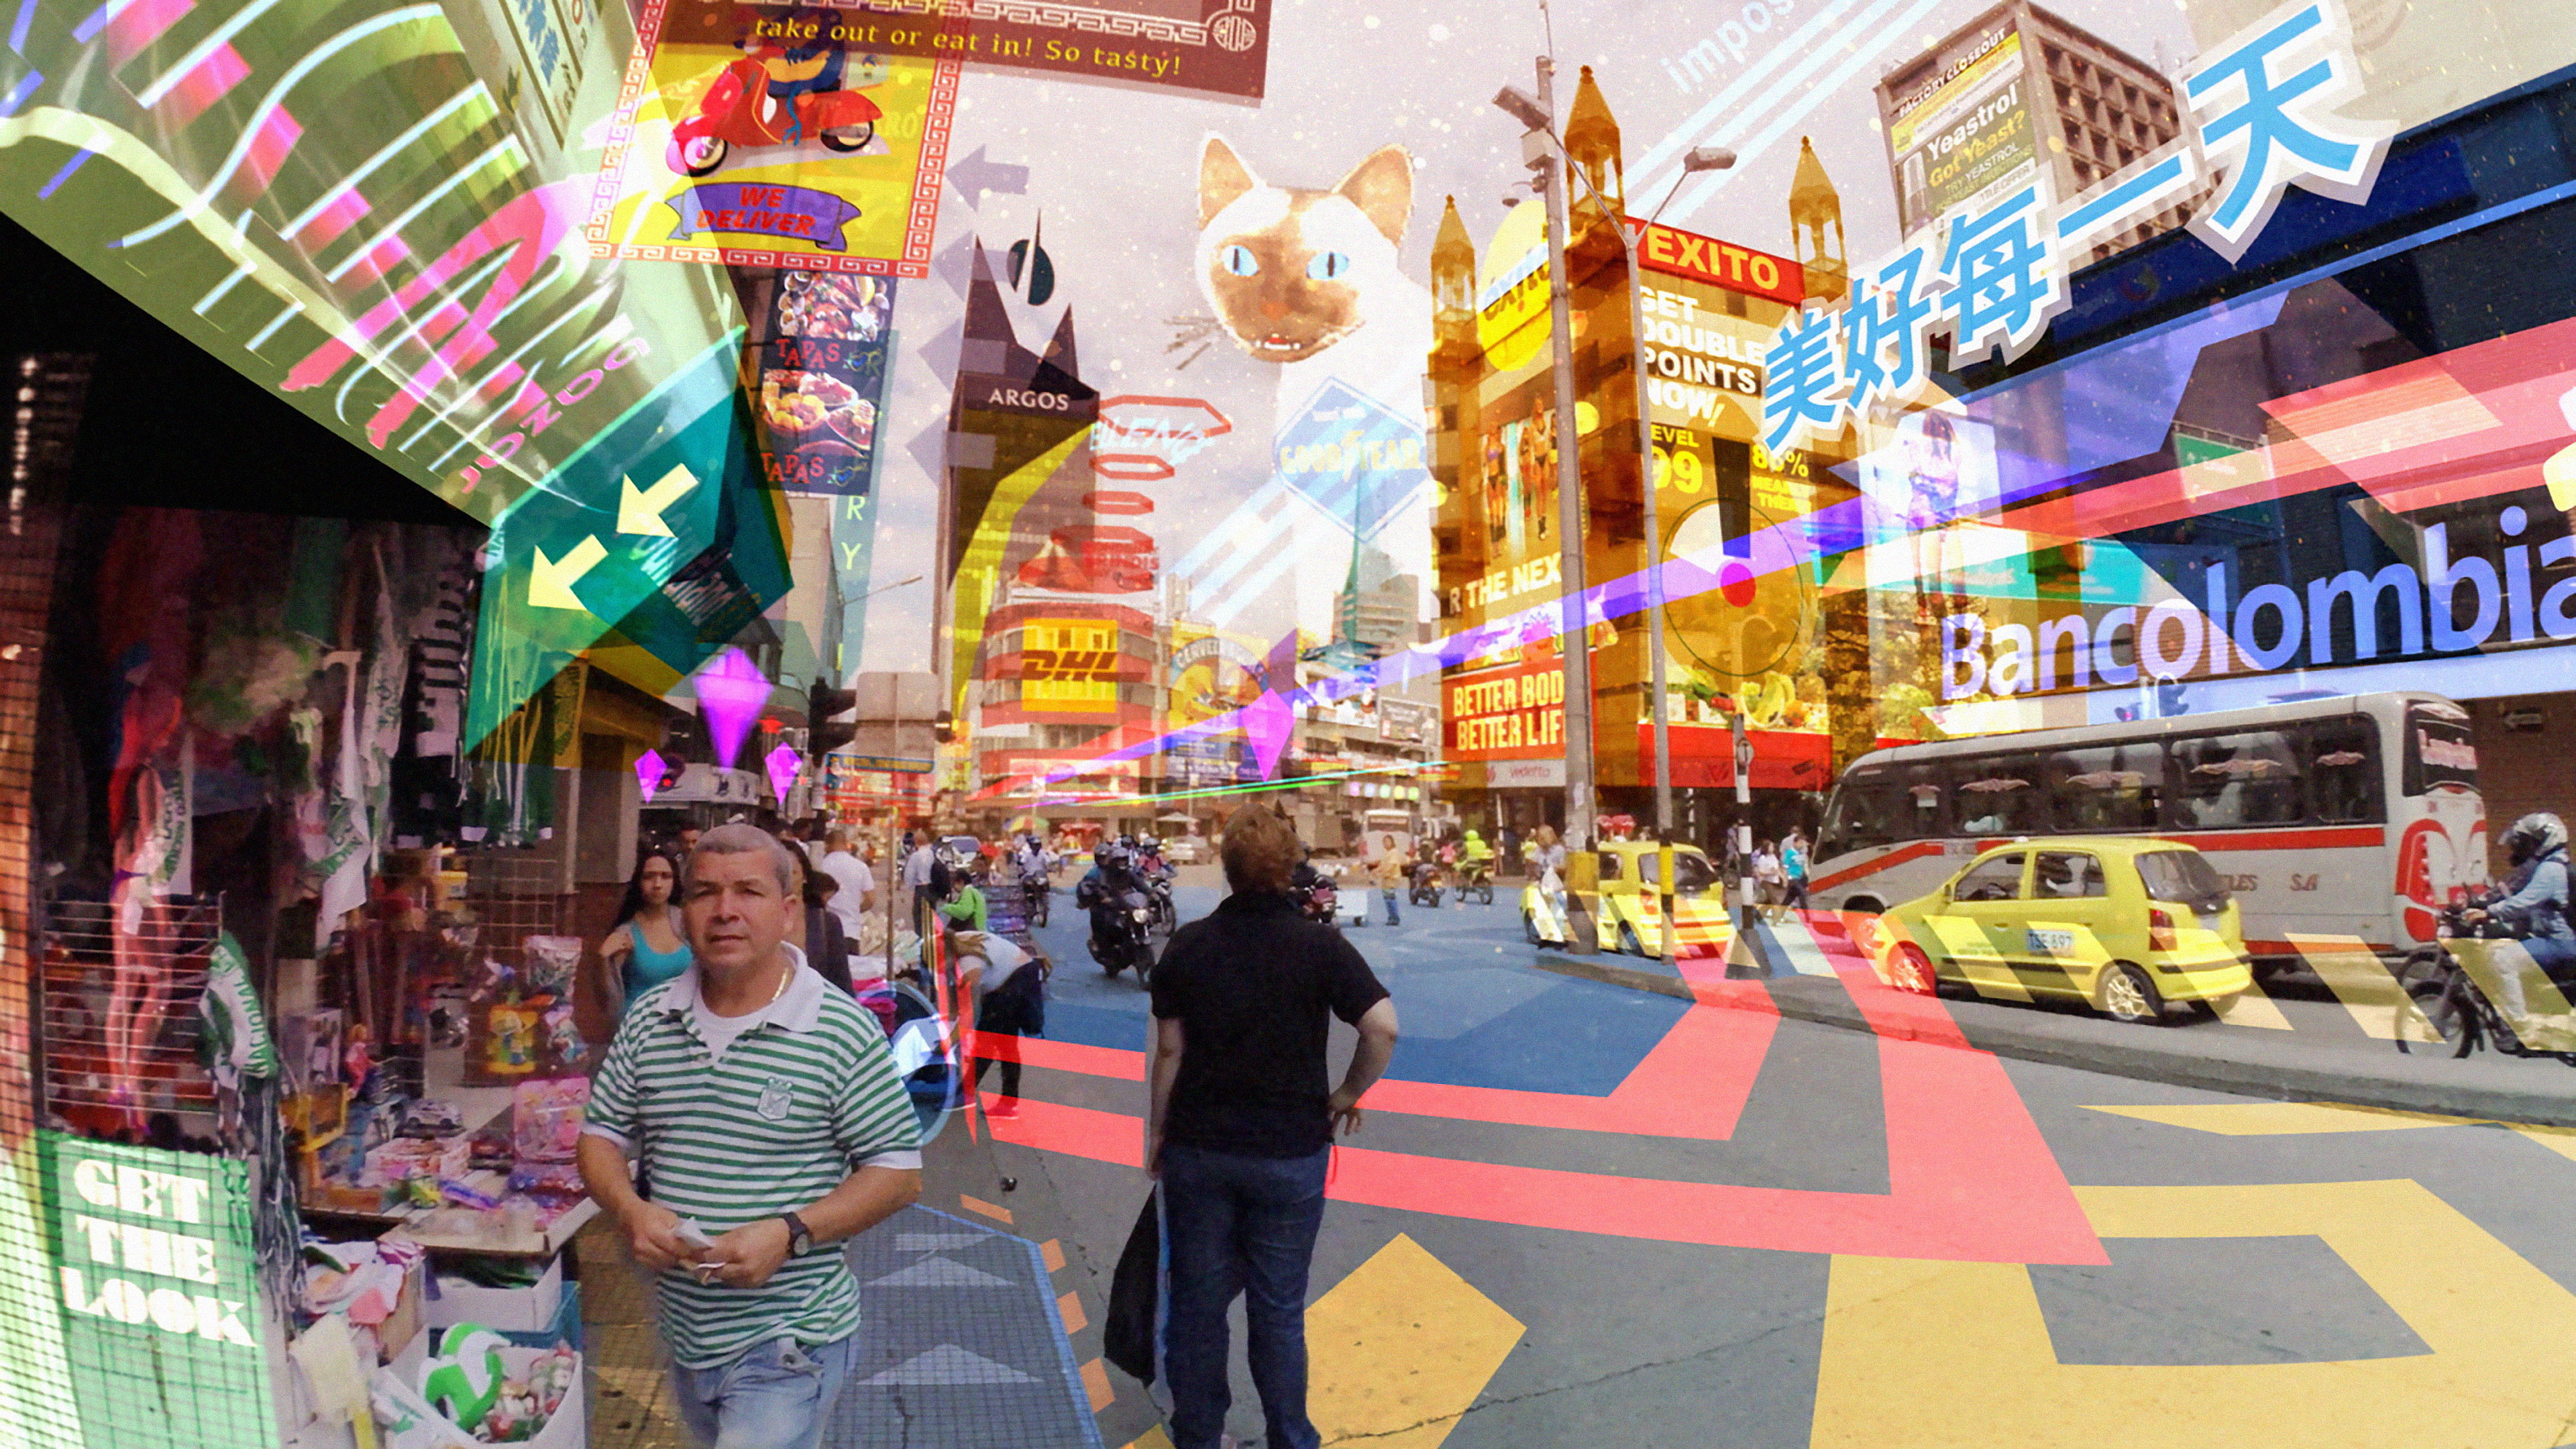 hyper reality Every physical surface in hyper-reality has been plastered with holographic images, often to the point of obscuring the underlying world altogether.